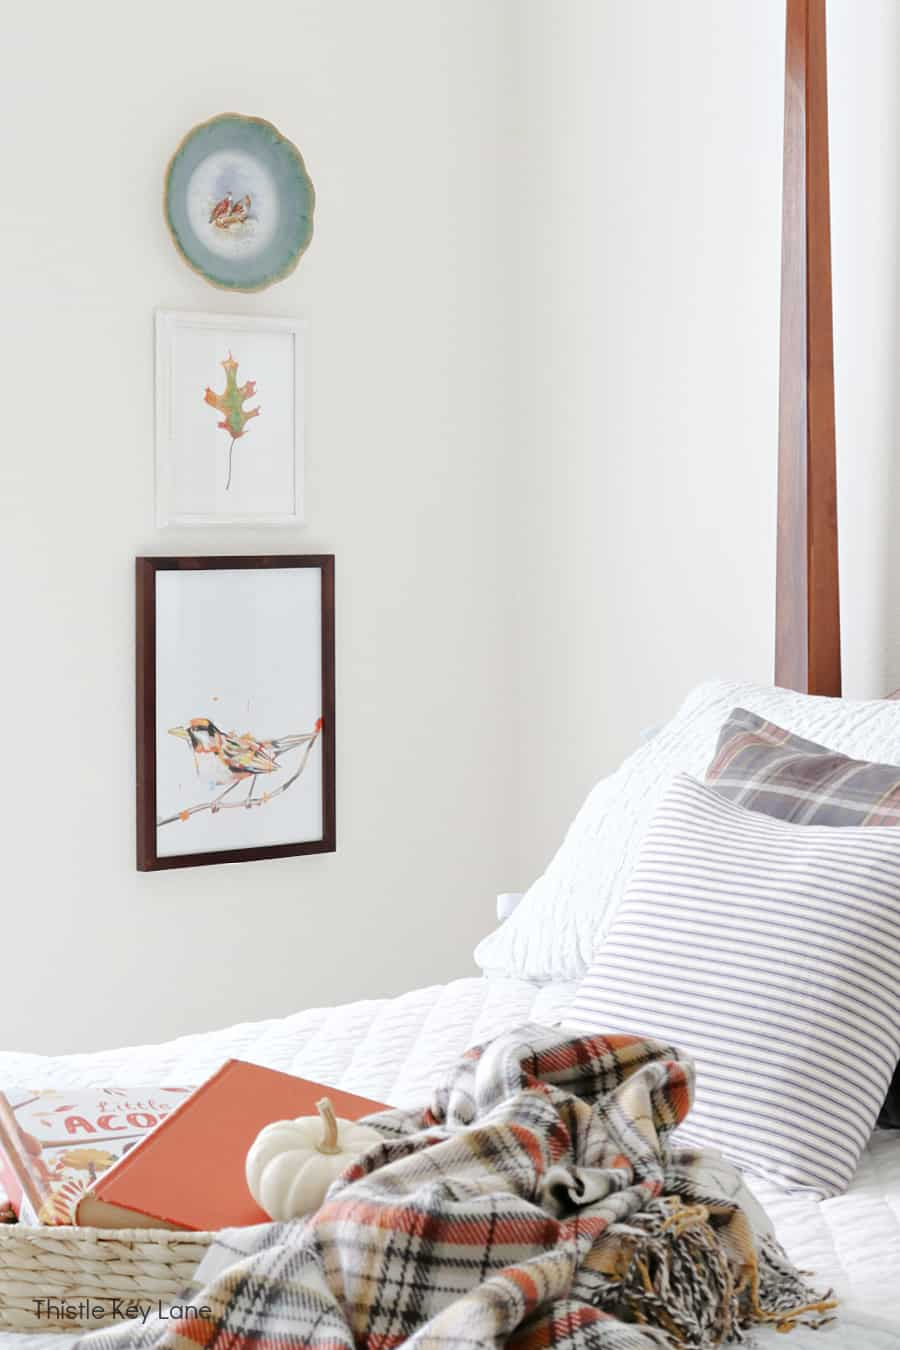 Decorative plate and framed artwork next to a bed.